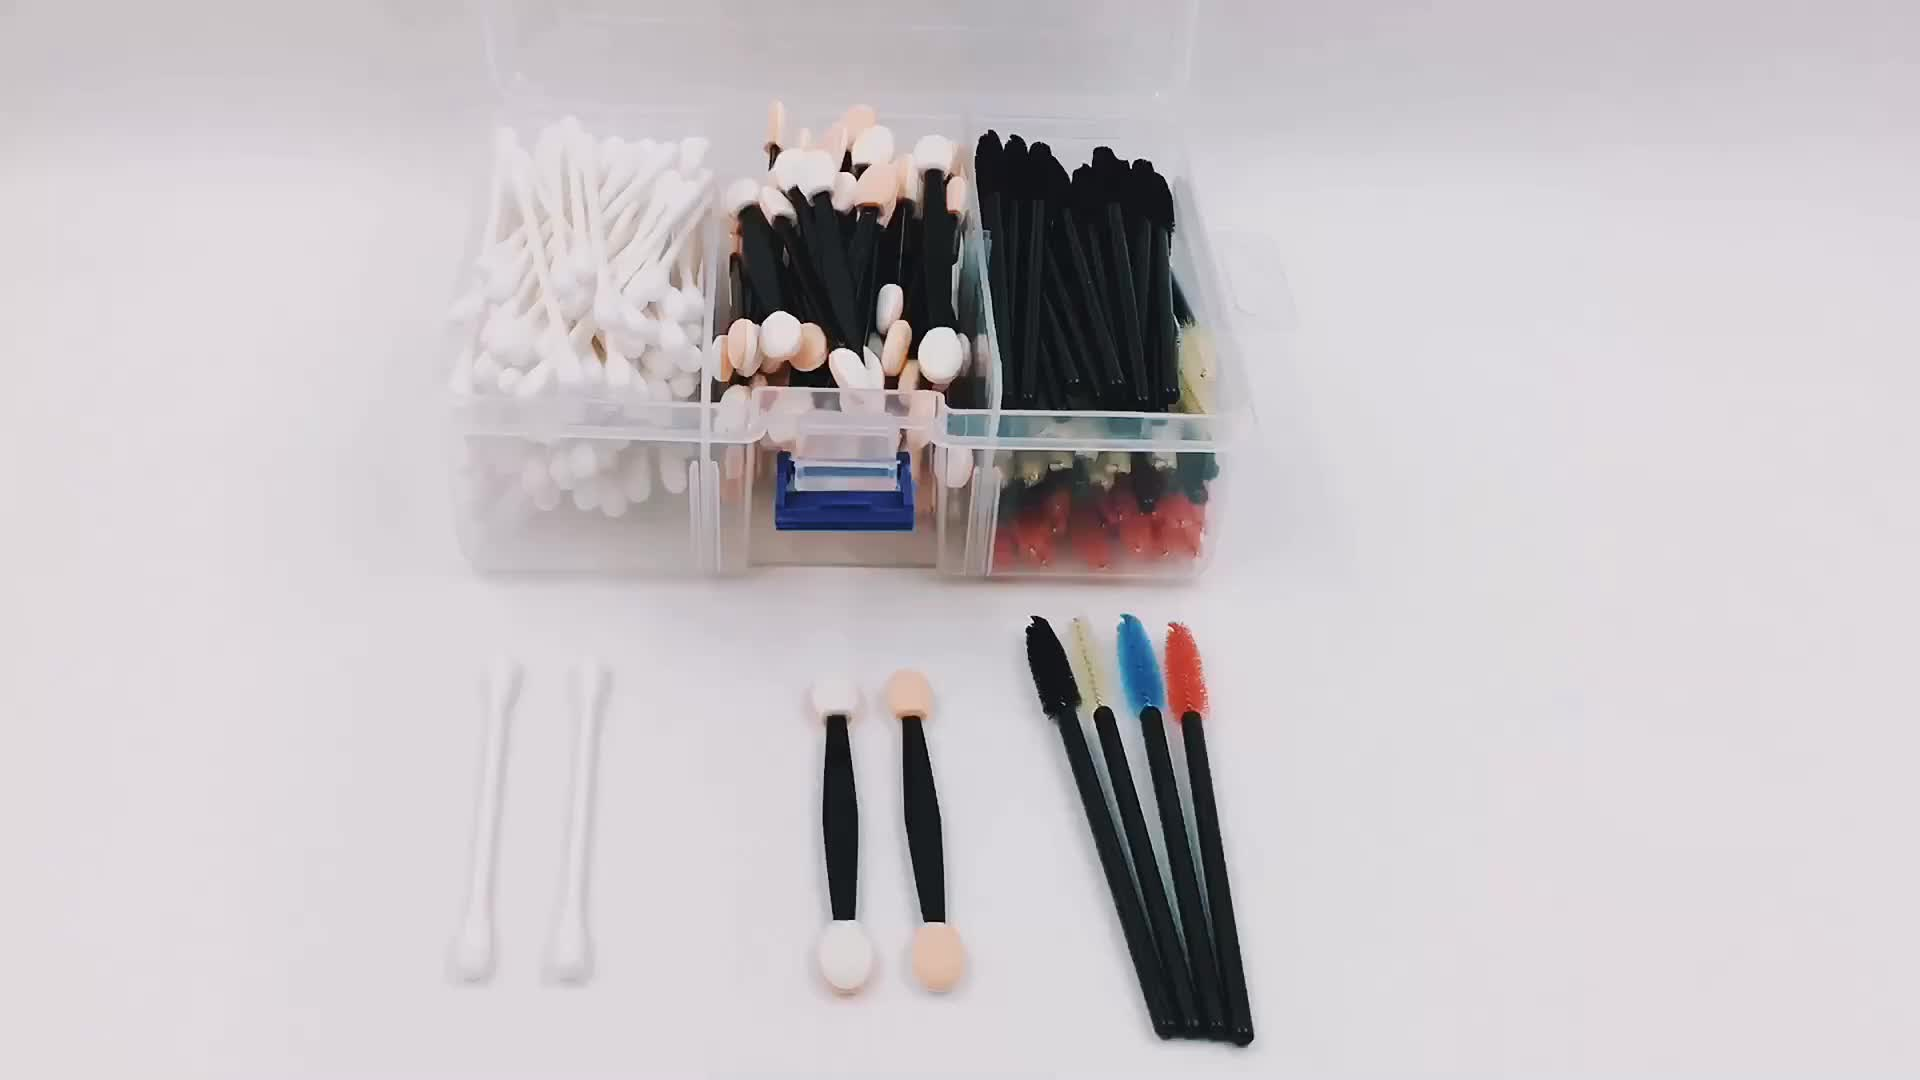 220pcs EYESHADOW APPLICATORS MASCARA WANDS COTTON SWABS Filled Makeup Container